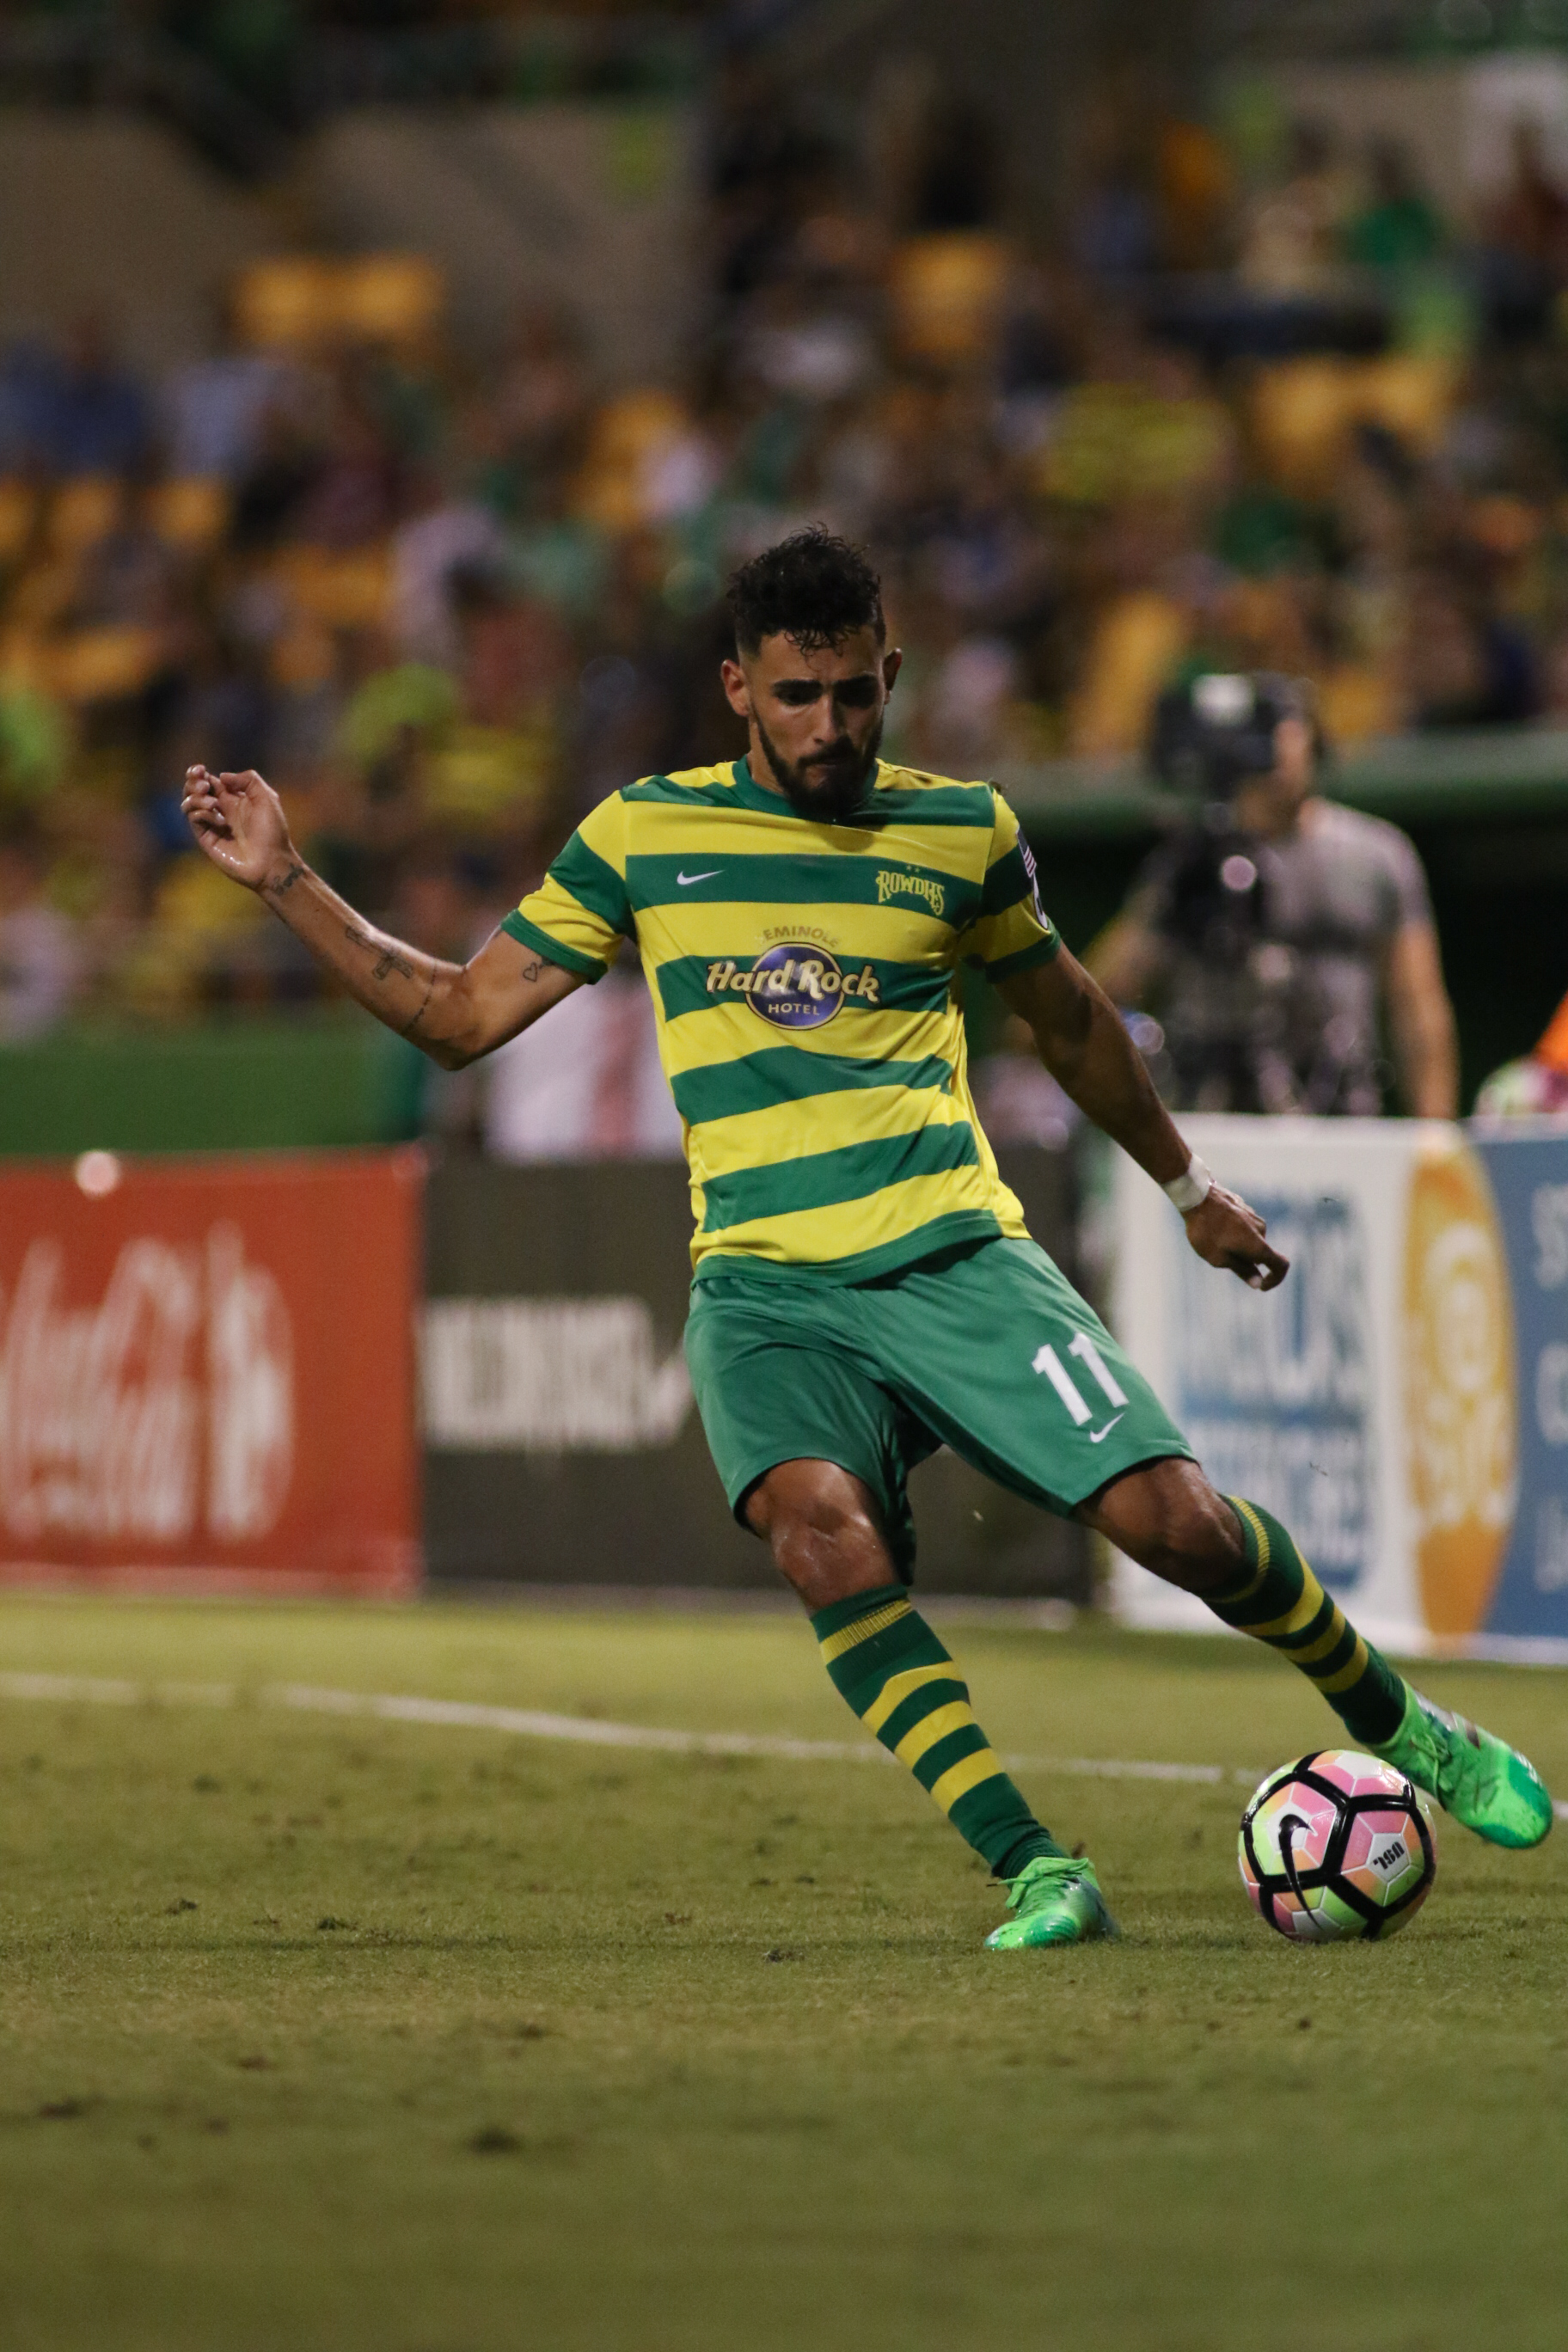 Fernandes scored the Rowdies' first goal of the season.